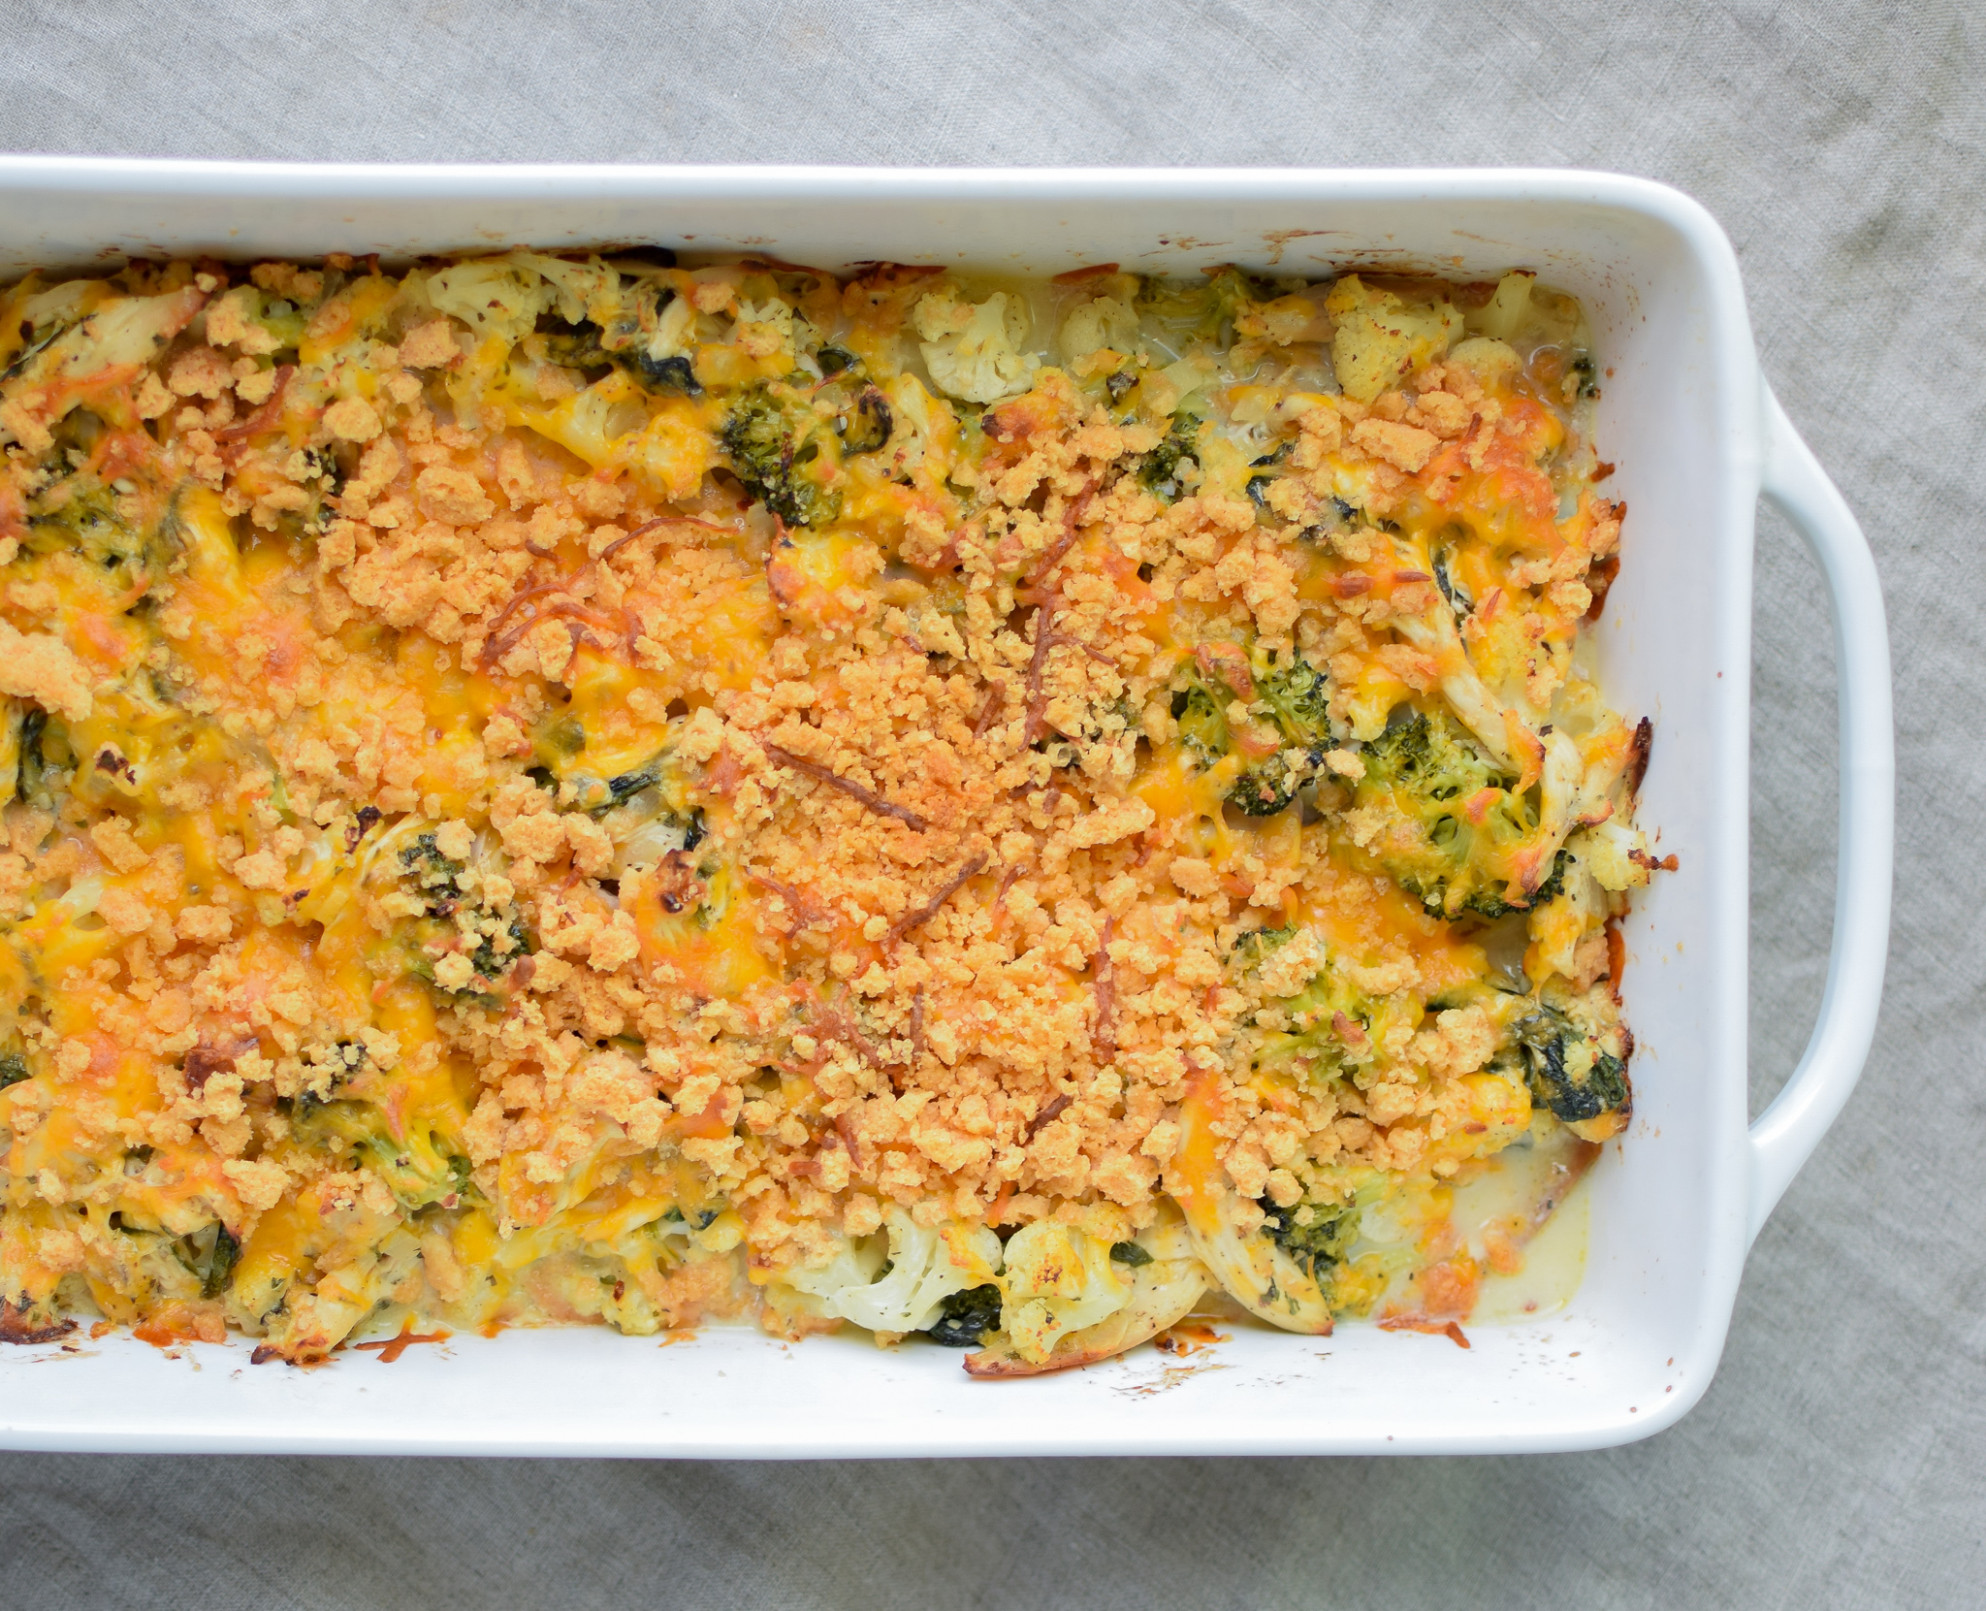 Veggie Loaded Rotisserie Chicken Casserole - Project Meal Plan - recipes vegetarian casseroles